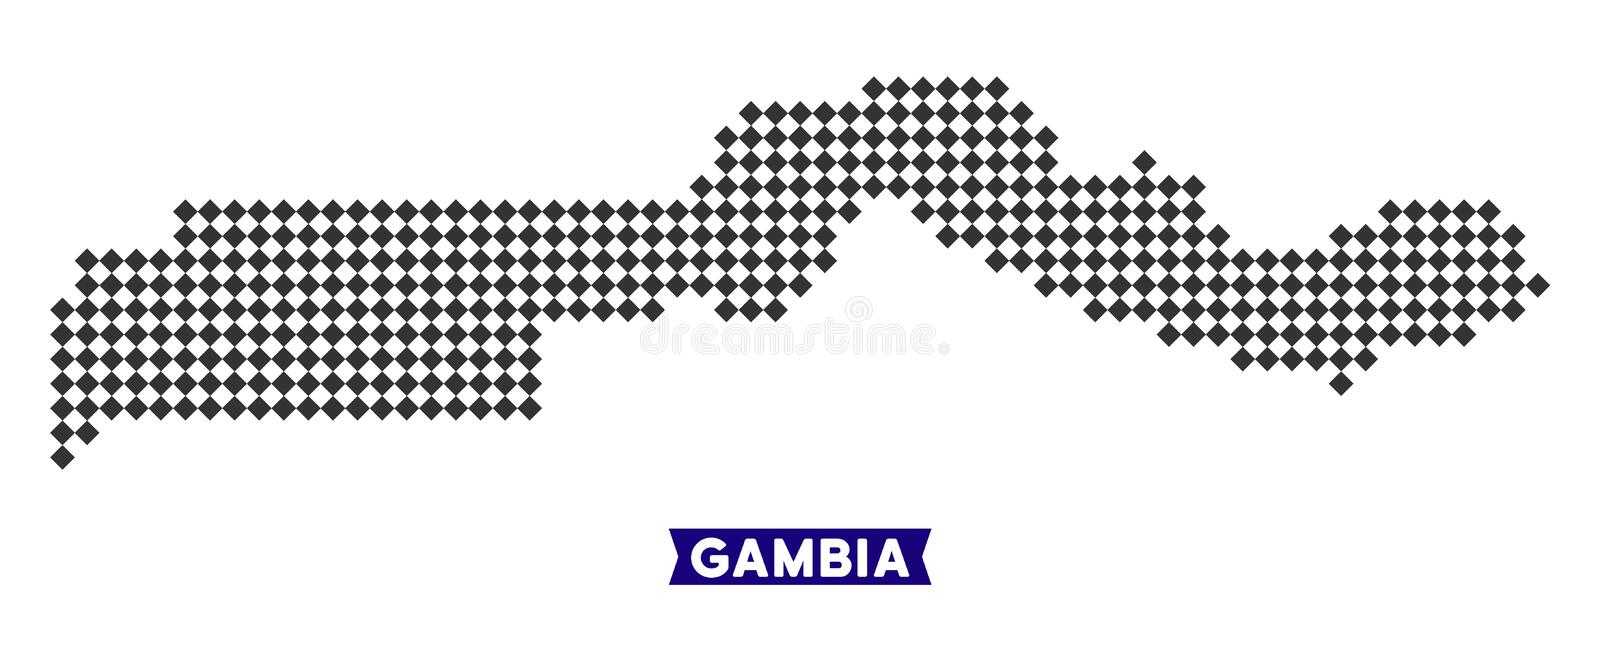 Dot The Gambia Map illustration stock